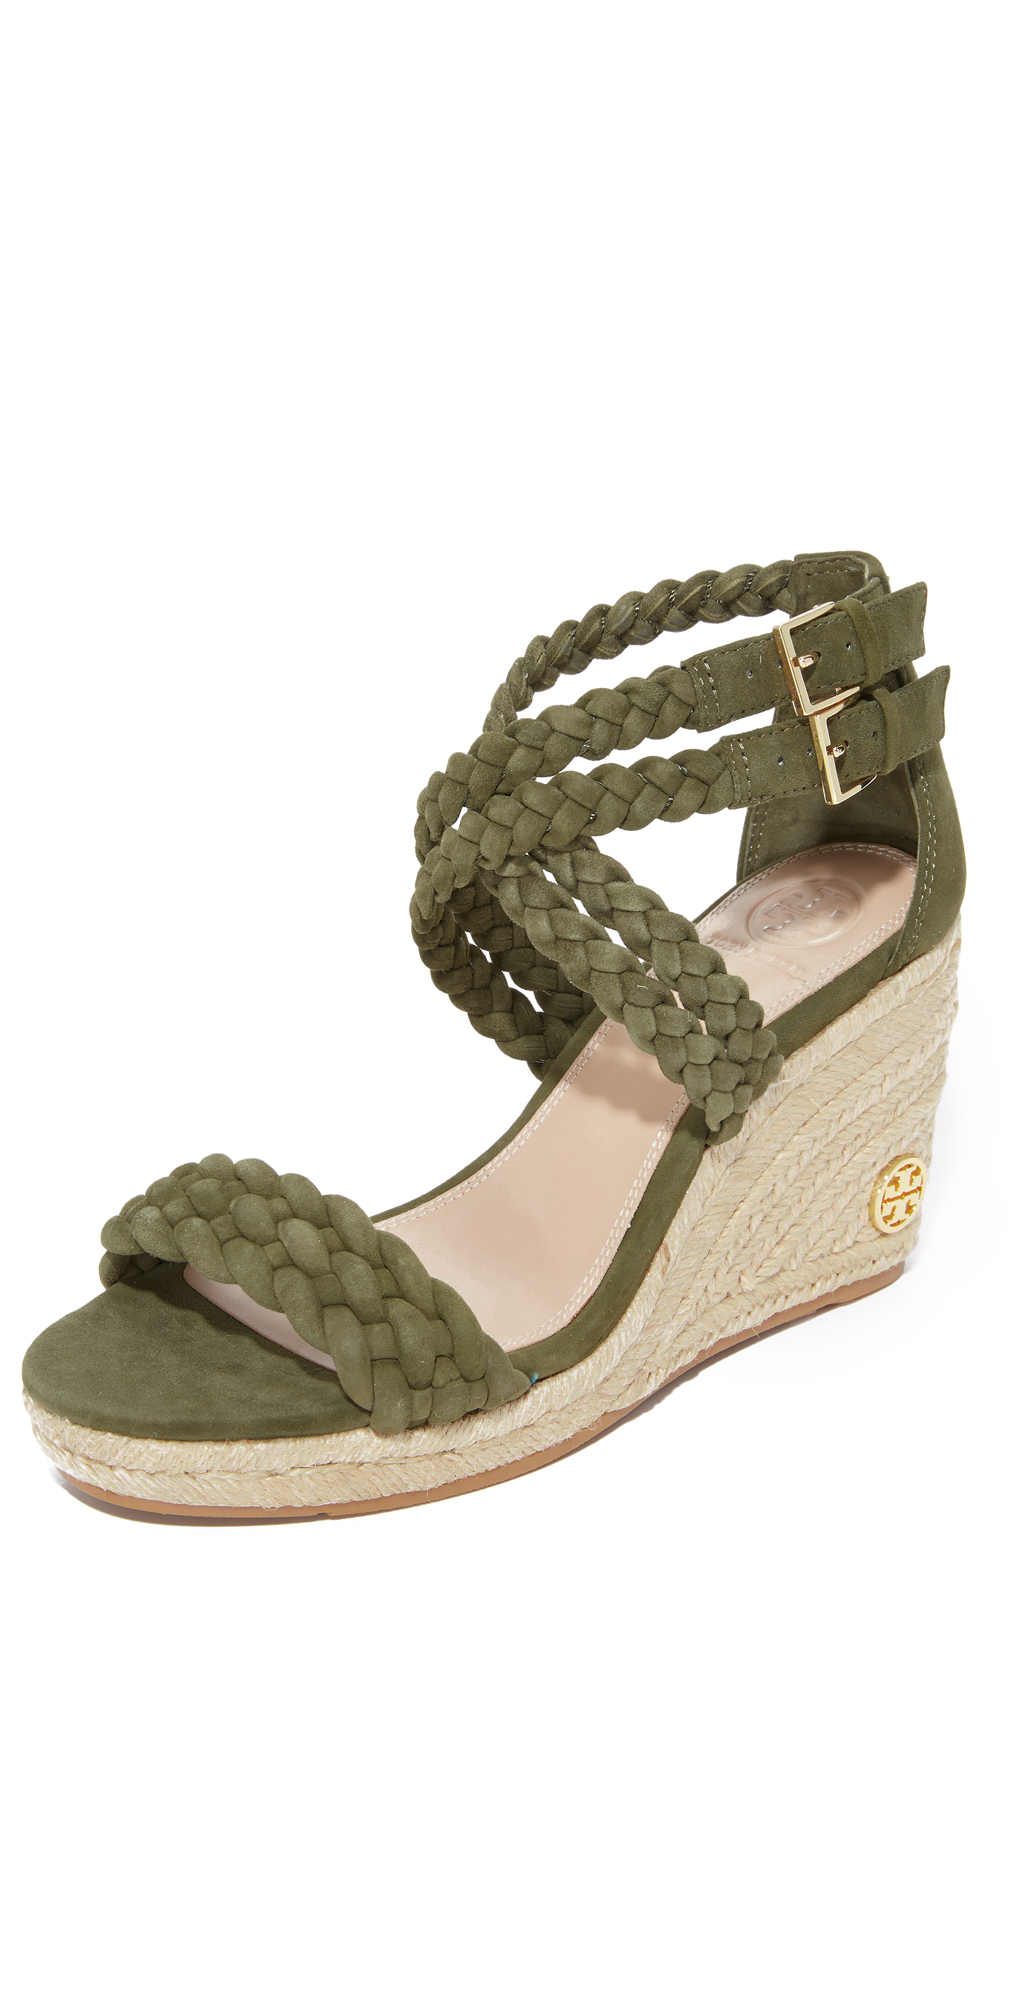 Bailey 90mm Ankle Strap Wedge Espadrilles Tory Burch